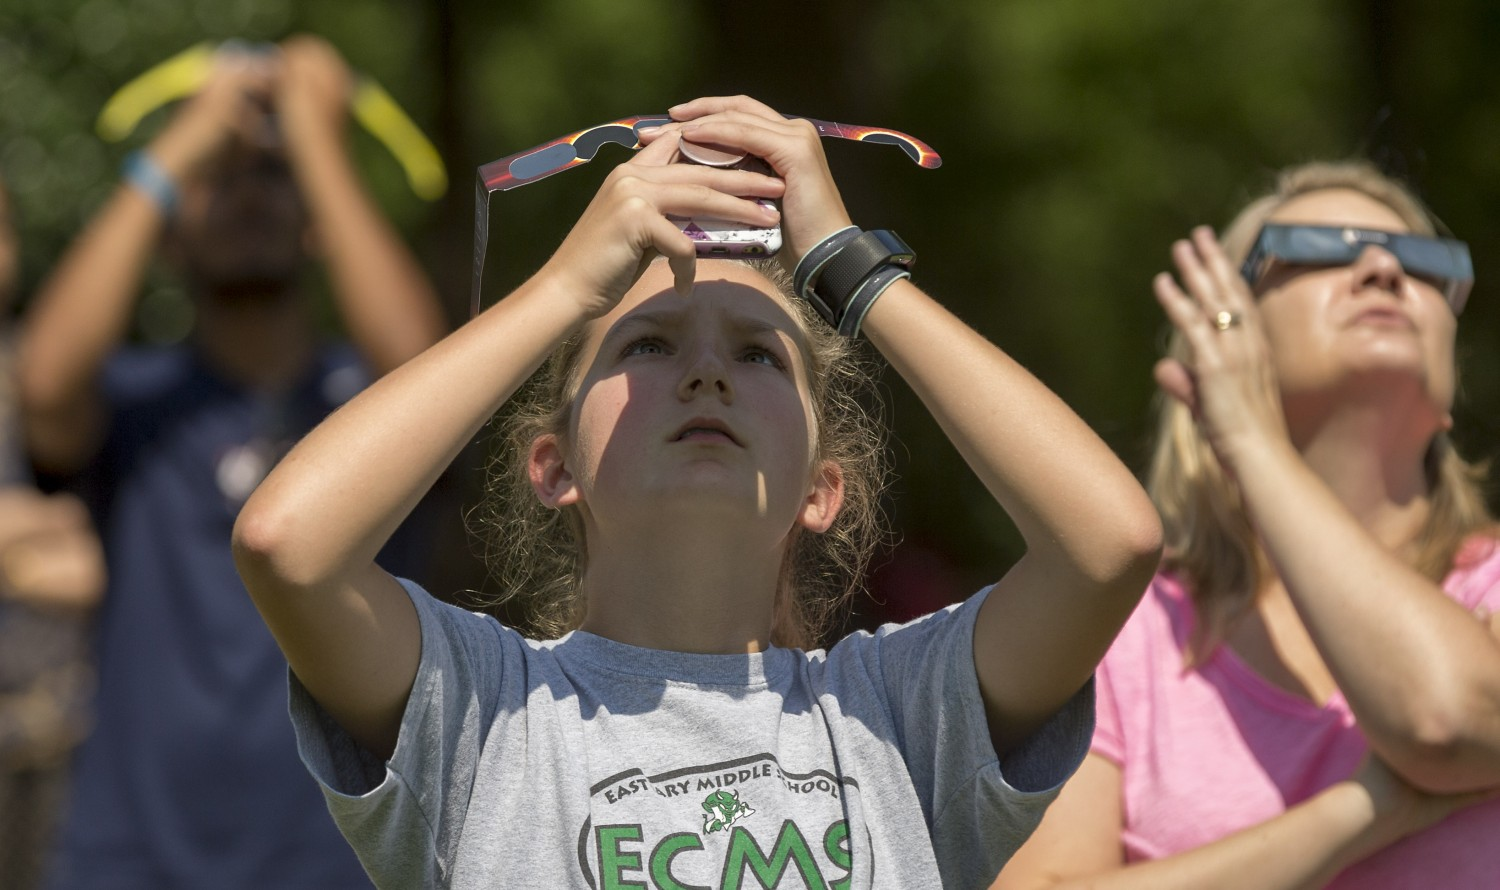 A viewer covers the lens of her cell phone with eclipse glasses in an attempt to take a photo of the eclipse.